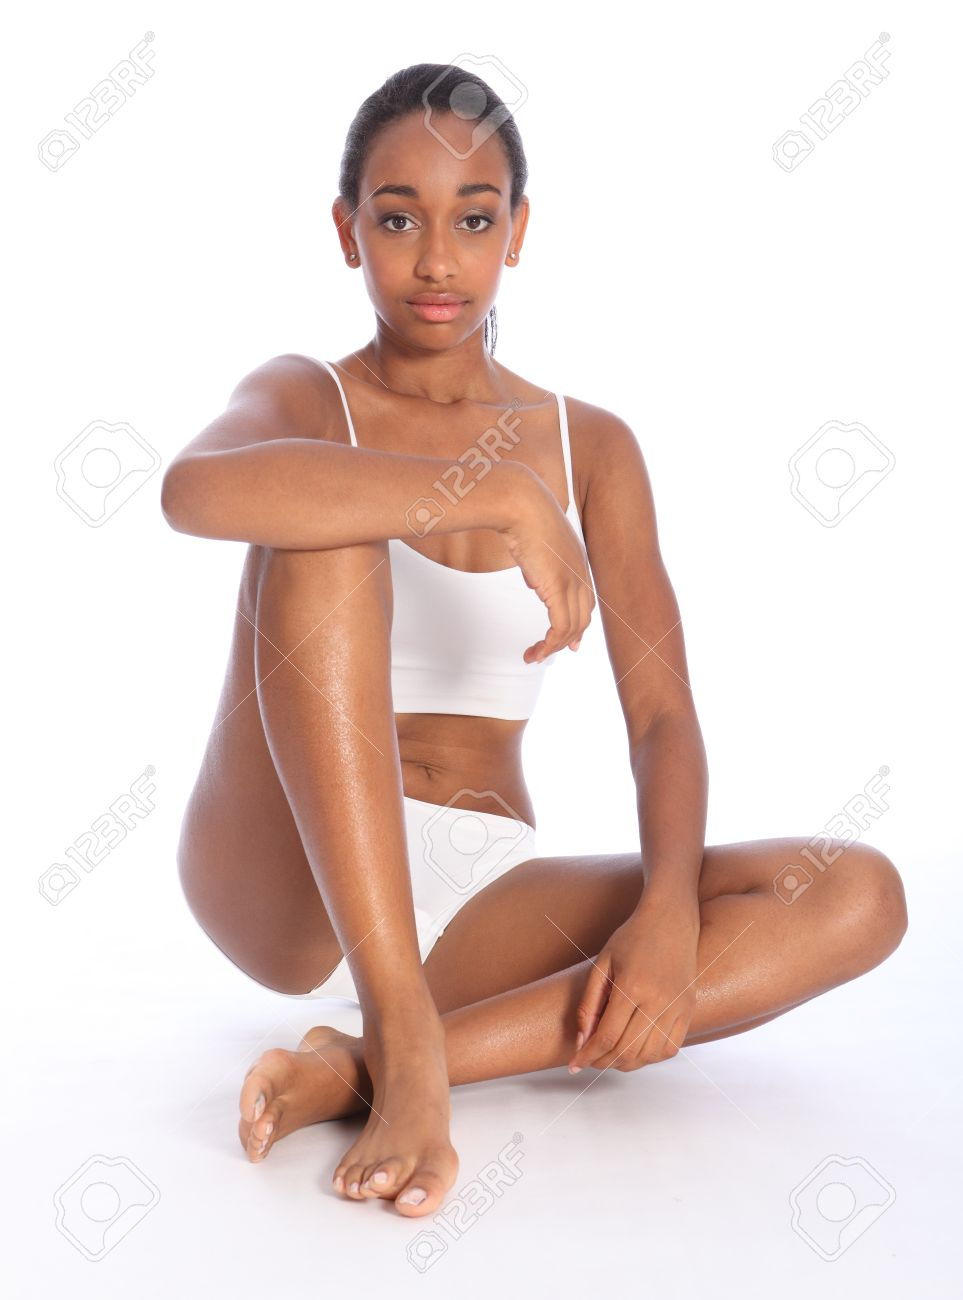 Healthy fit body of beautiful young black woman sitting on the floor 2e6a9d37f